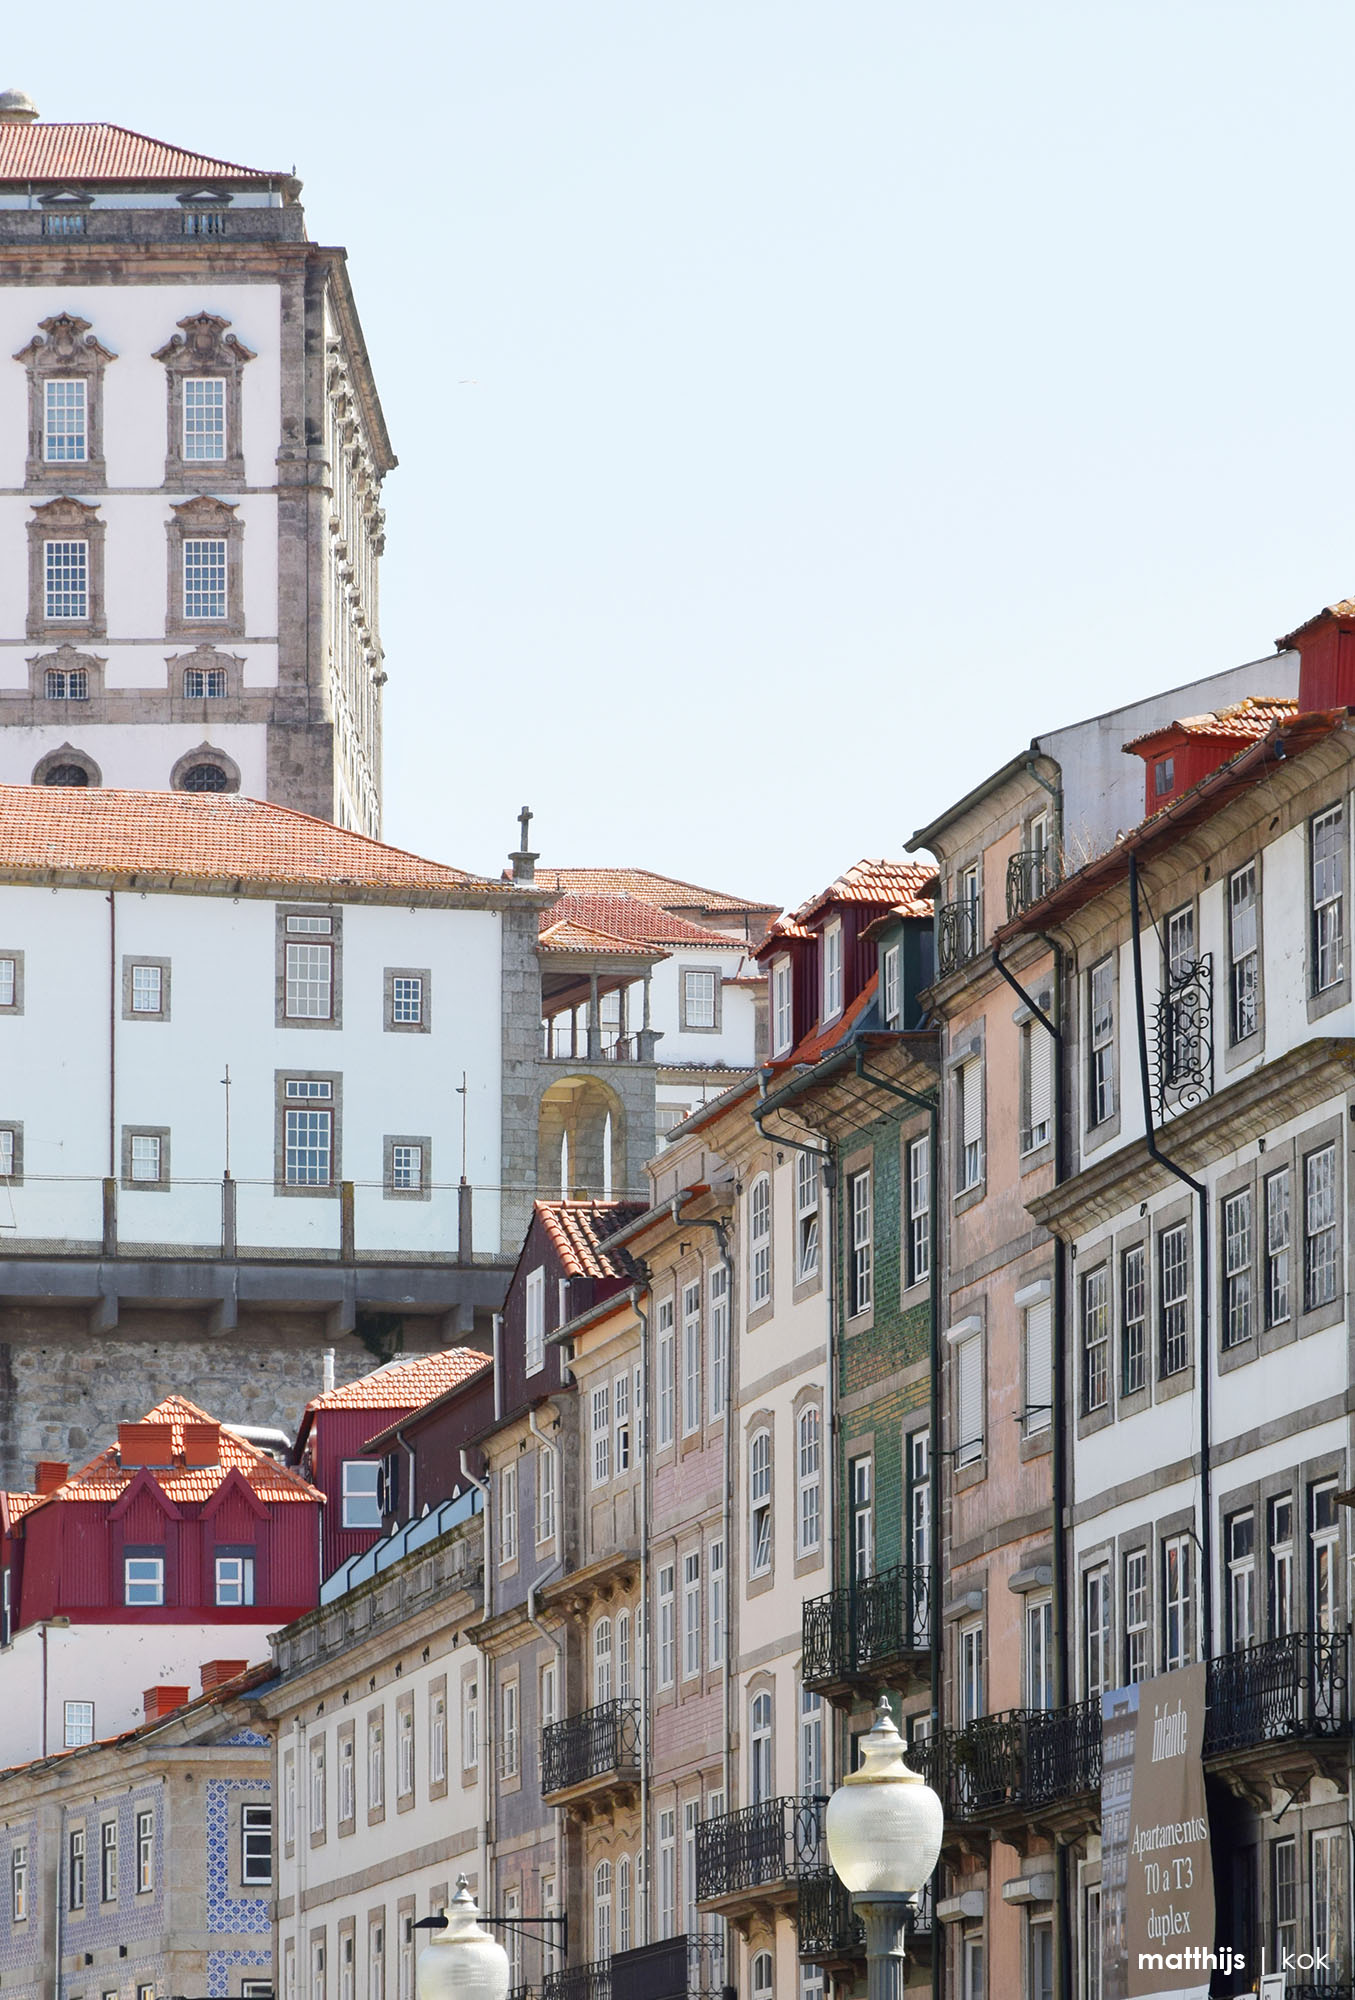 Streets of Porto, Portugal | Photography by Matthijs Kok